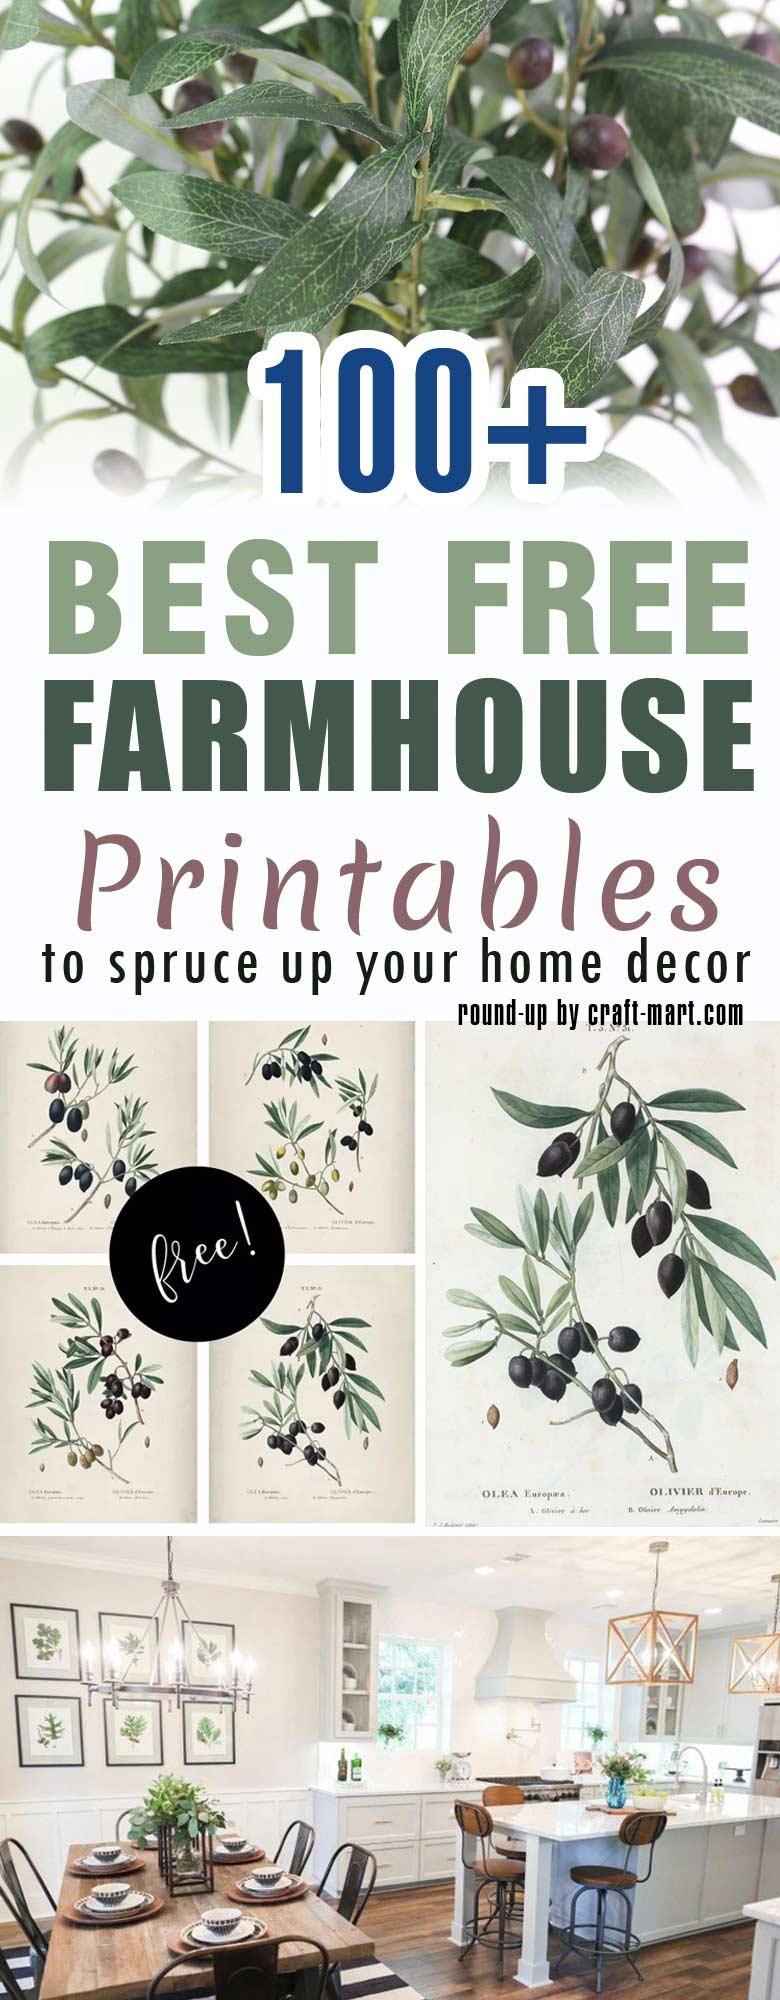 100 best free farmhouse printables to spruce up your home decor by craft-mart